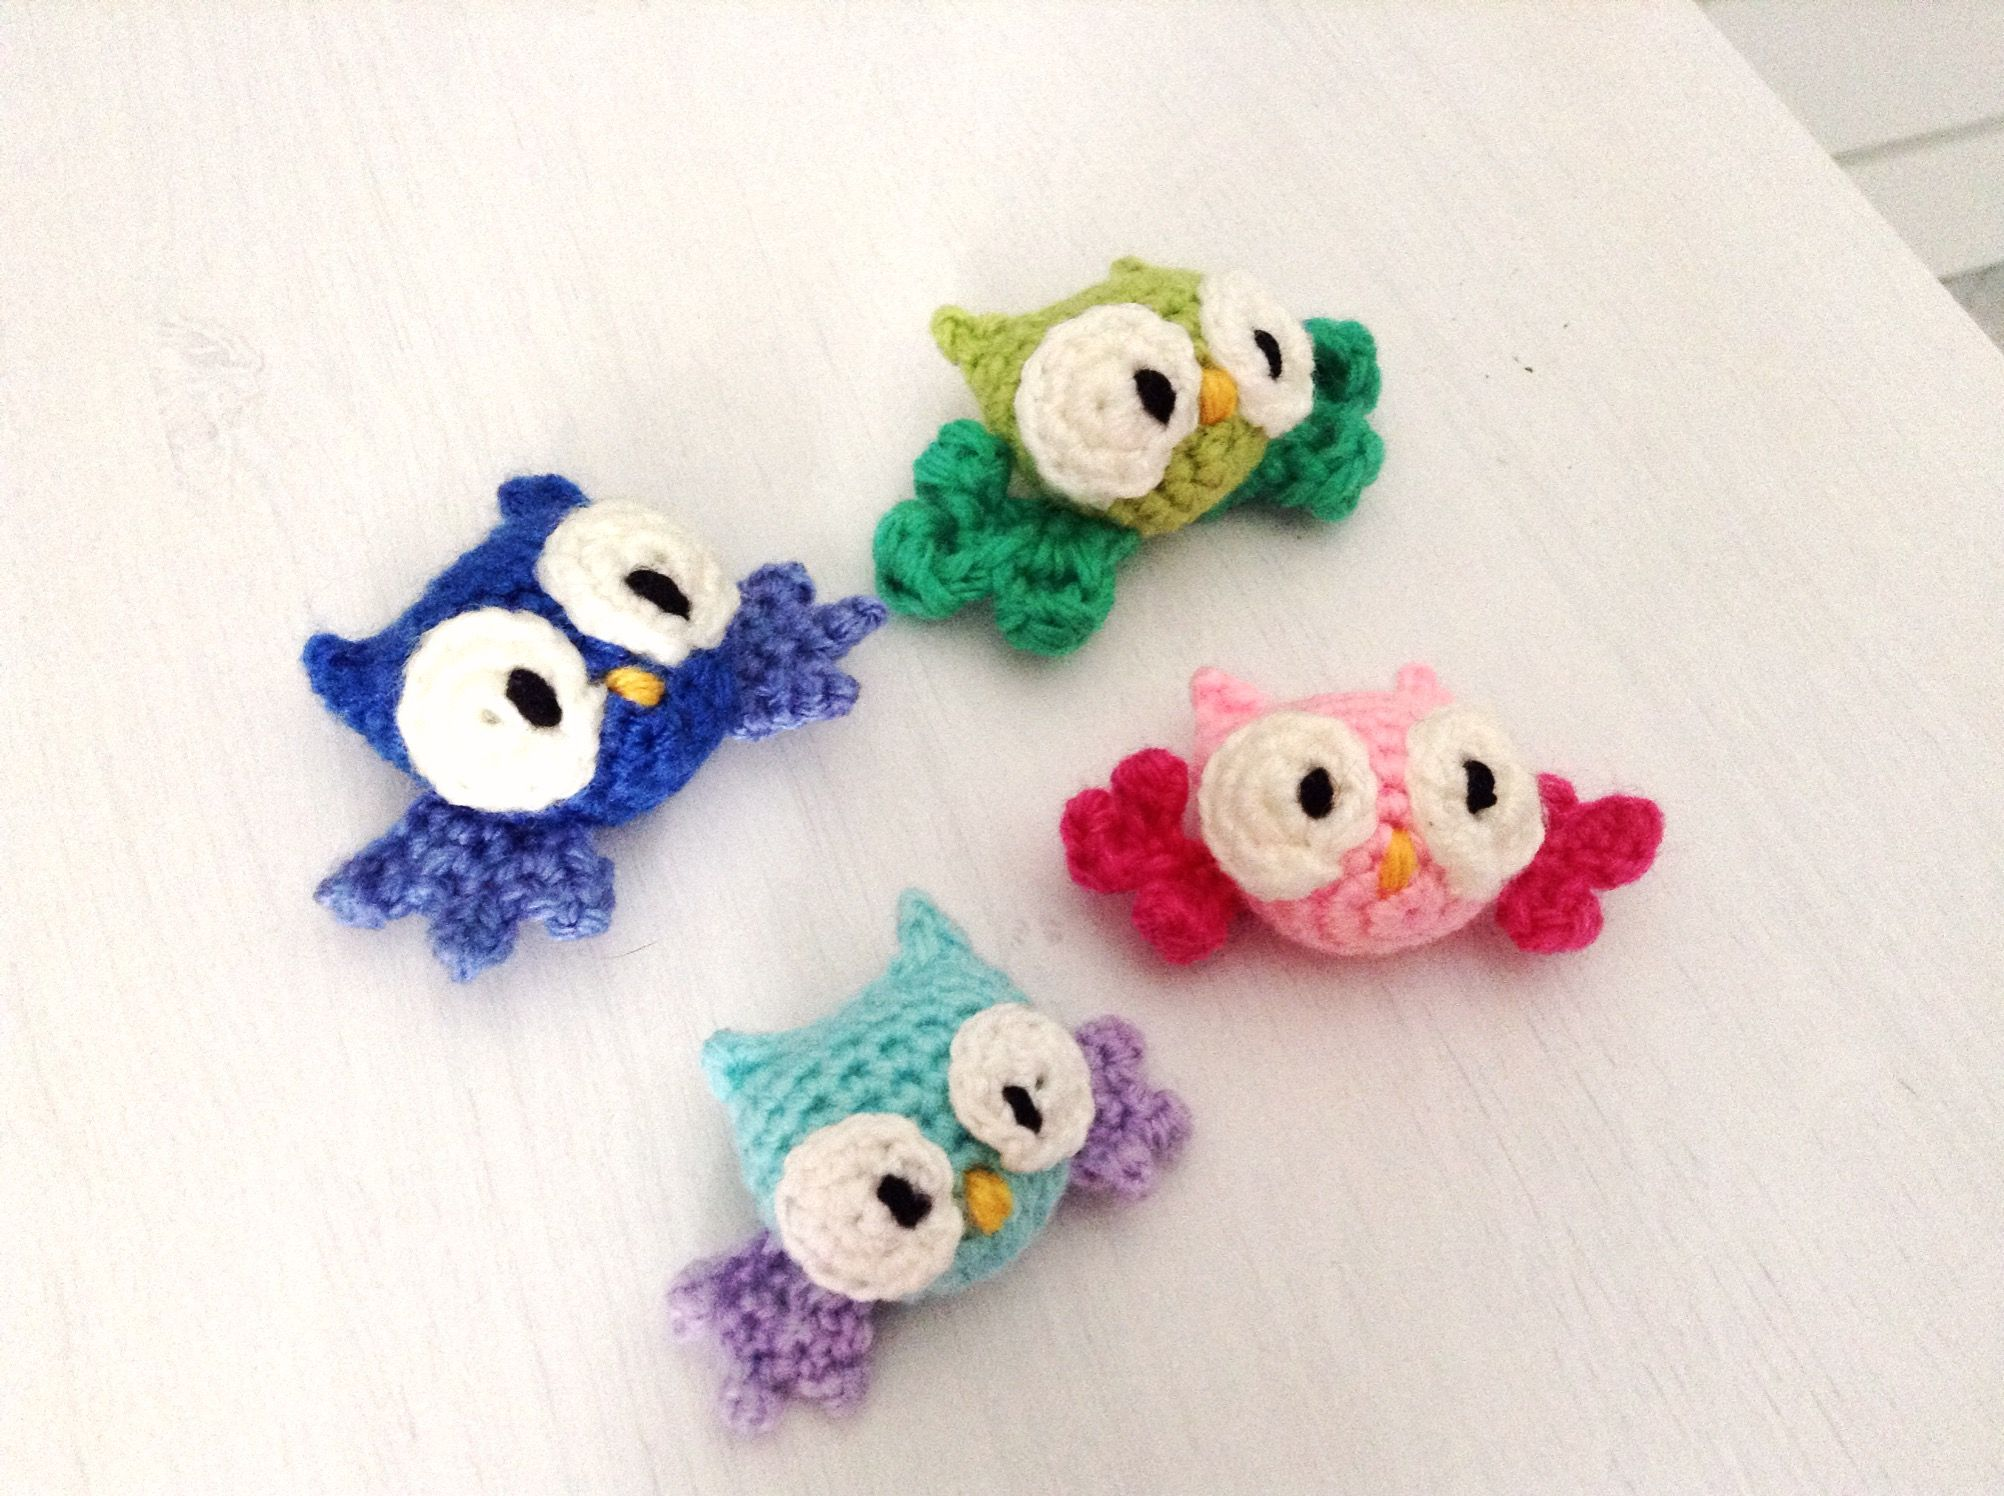 Today I thought I'd share another free pattern - of these miniature amigurumi owls! They are easy to make and can be done in a million varieties of colors and looks. I'm sharing the pattern for the...